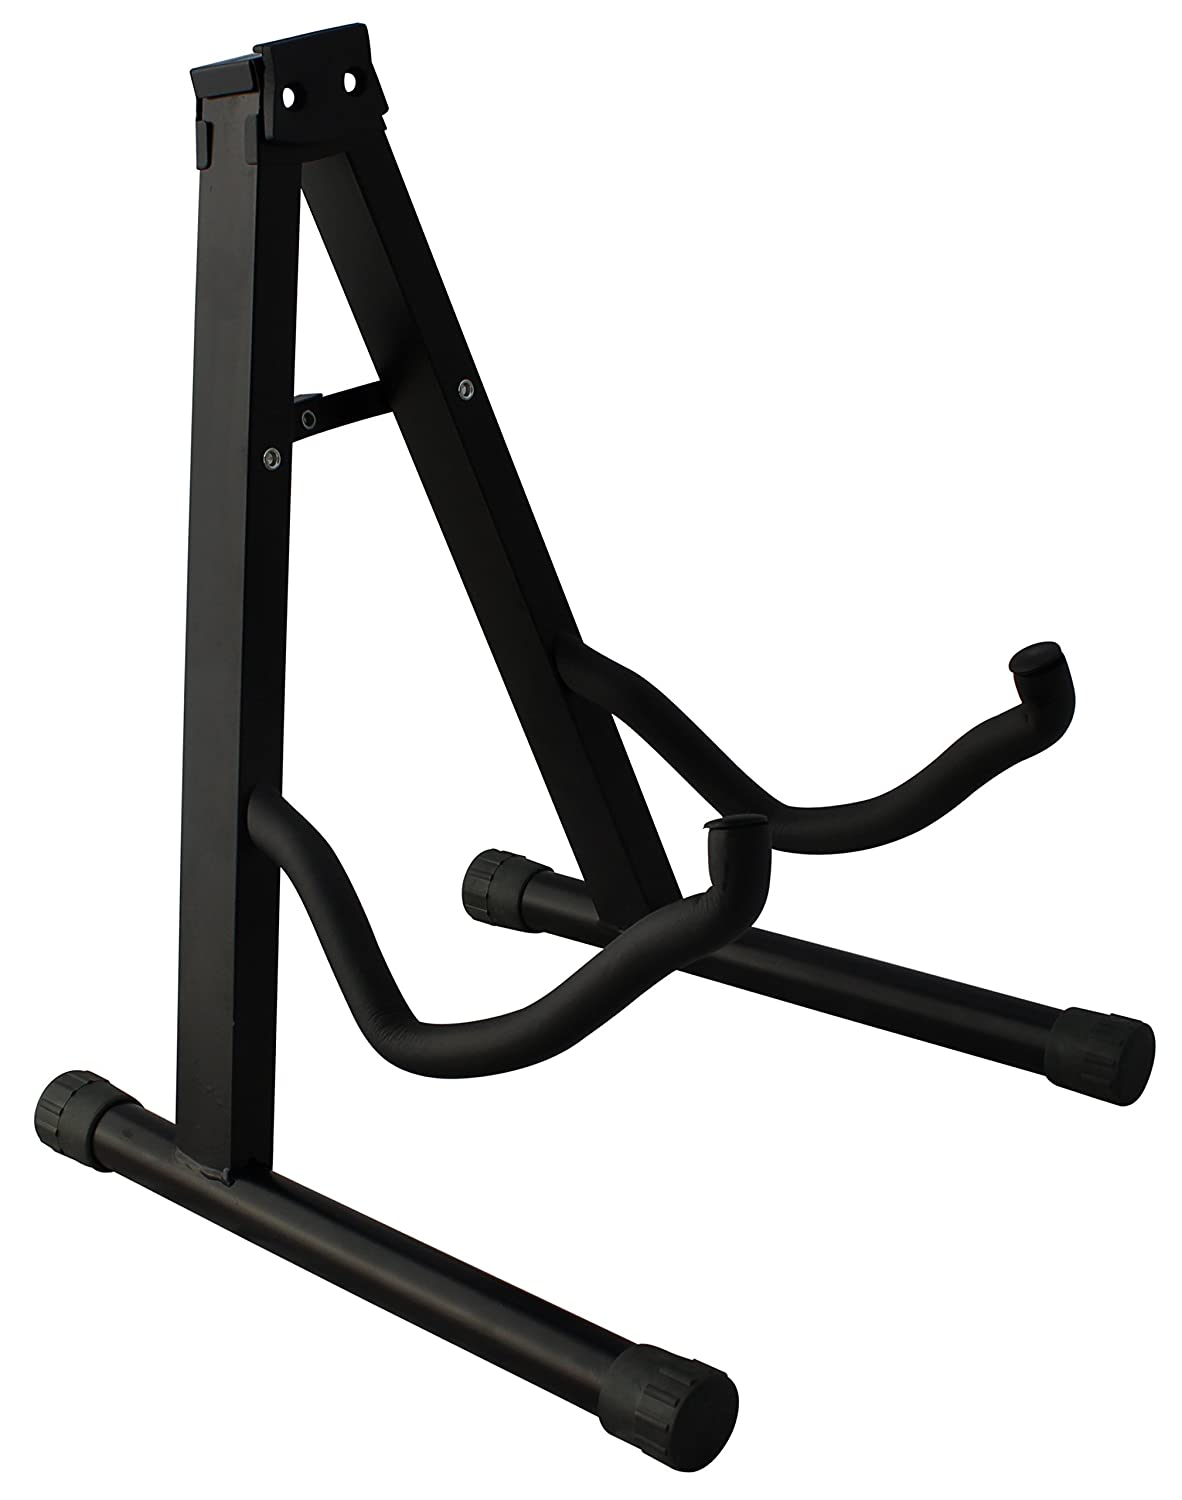 YMC Universal Folding 5 Holder Guitar Stand Rack with Secure Lock - for Acoustic and Electric Guitar